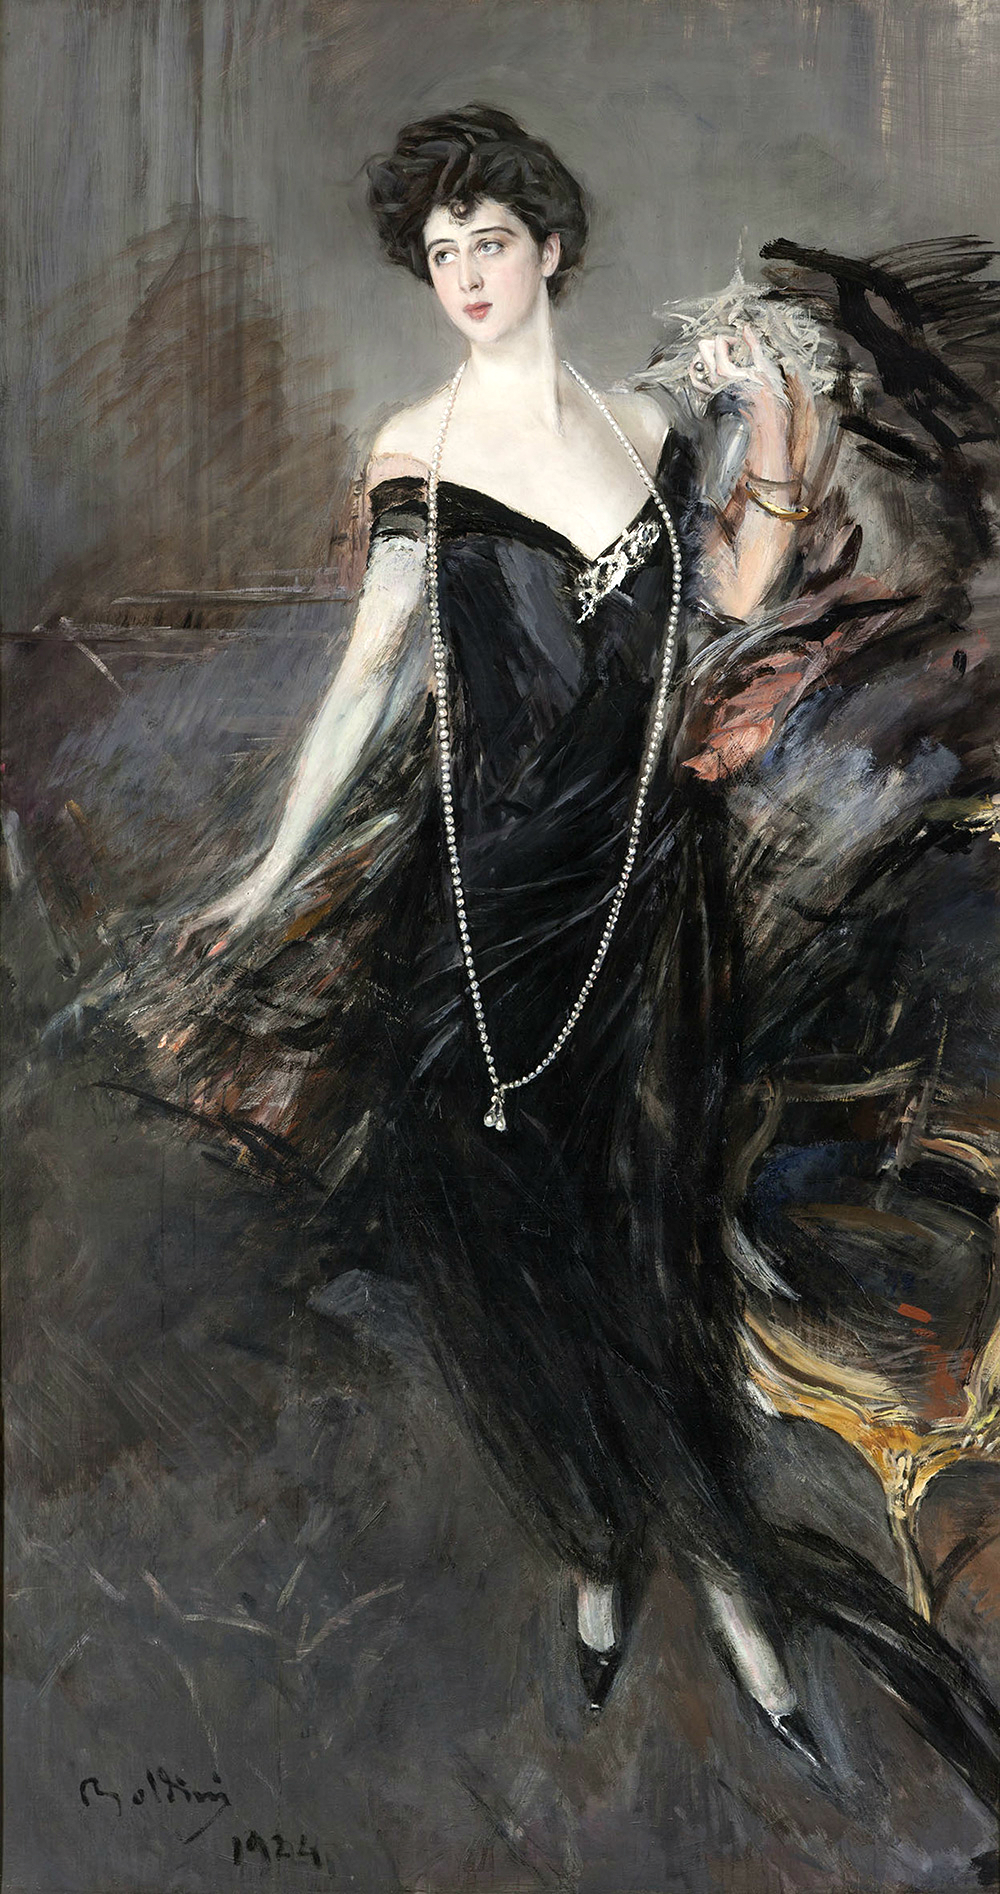 https://upload.wikimedia.org/wikipedia/commons/7/7c/Boldini_-_Franca_Florio.jpg